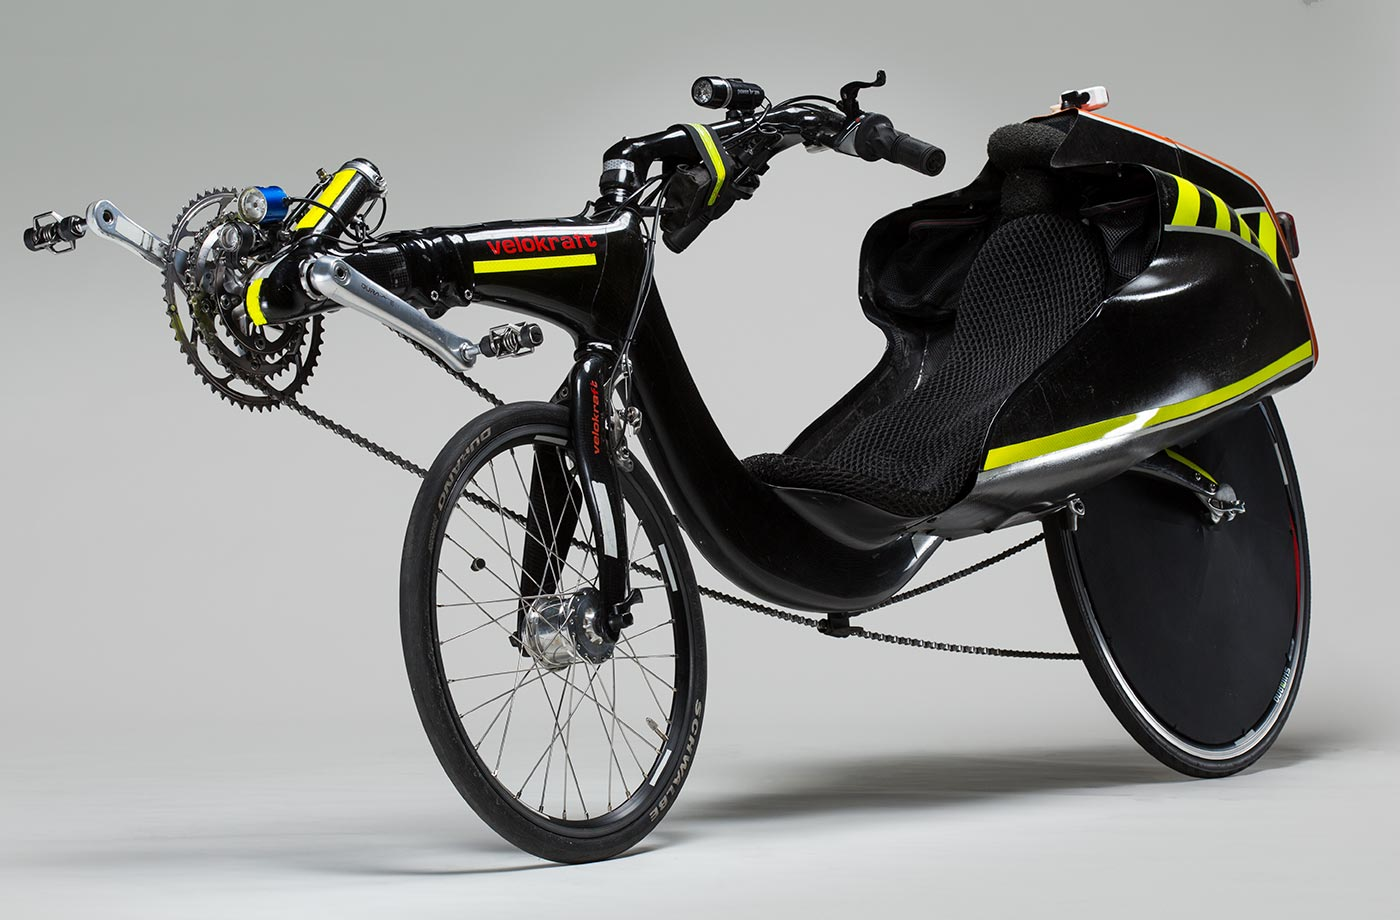 A recumbent bicycle with carbon fibre tailbox and two different size wheels. The rear wheel is larger and and has a black wheel cover. The pedals are in front of the front wheel. The steering is above seat. The body of the bicycle is black in colour with some bright yellow stripes. The text ' Velokraft ' is orange in colour and is printed on the frame in front of the bike. The orange colour is also on the top of the tailbox.  - click to view larger image